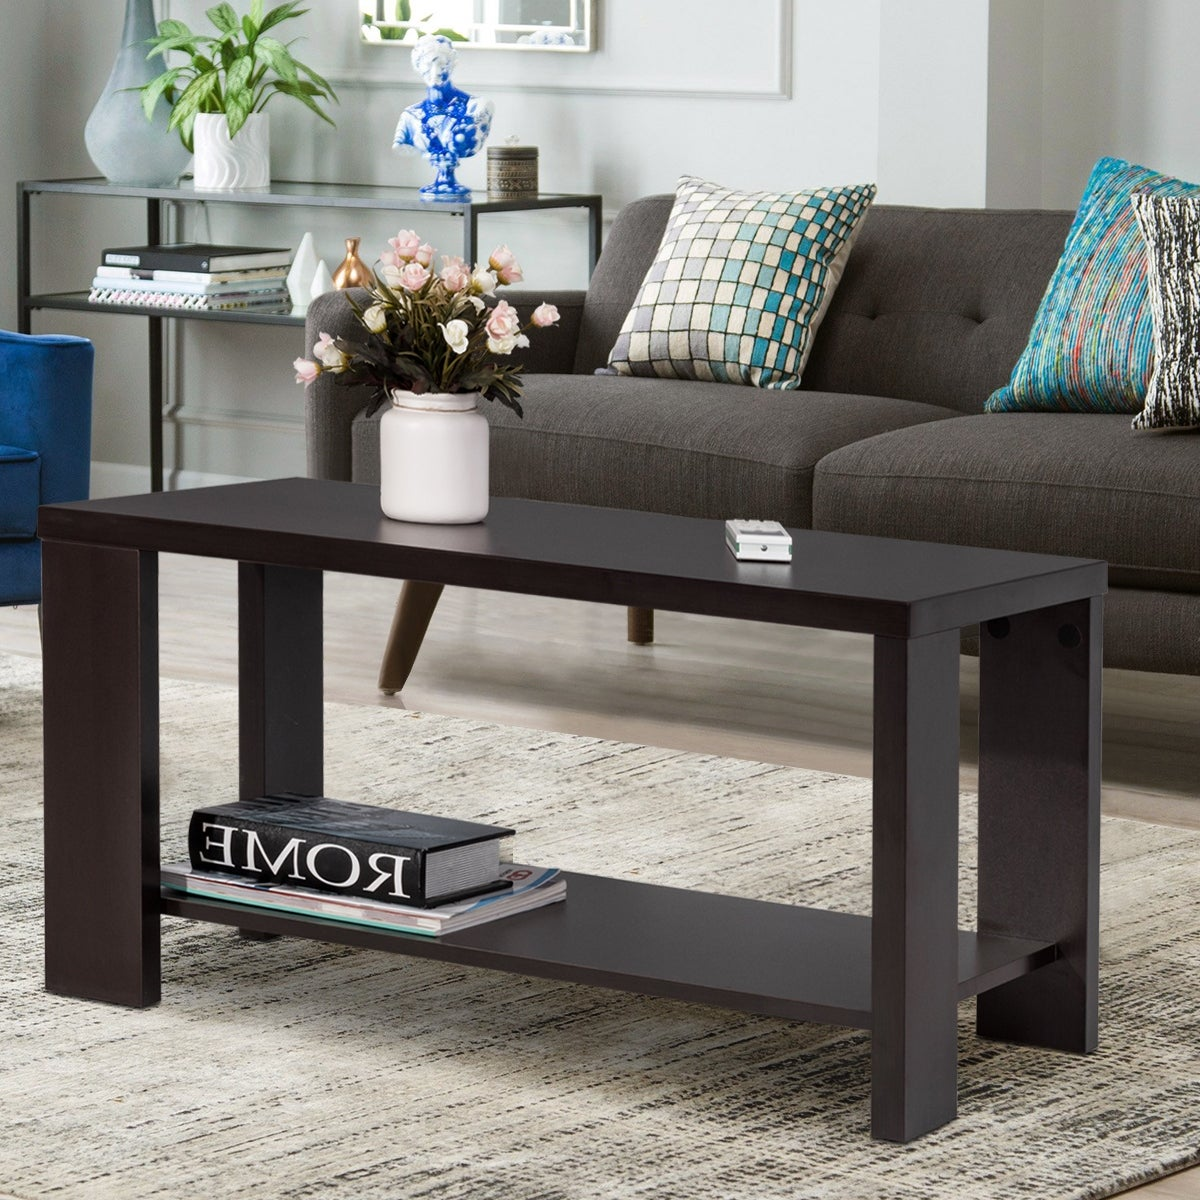 Gymax rectangular cocktail table coffee table living room furniture with storage shelf